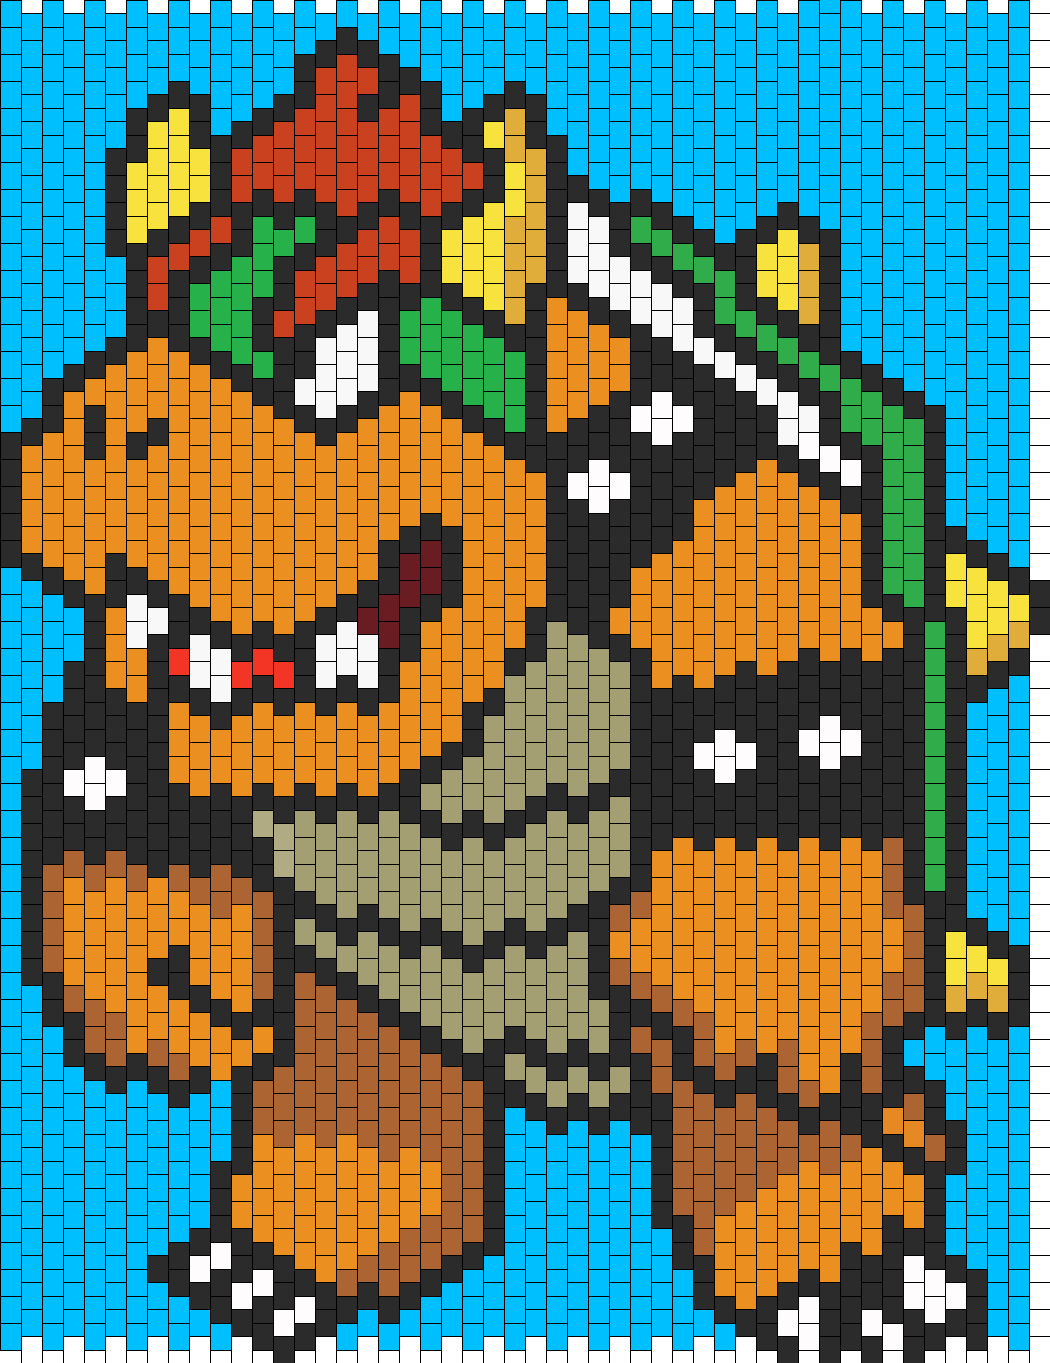 Bowser bead pattern | Beads | Pinterest | Bowser, Bead patterns and ...